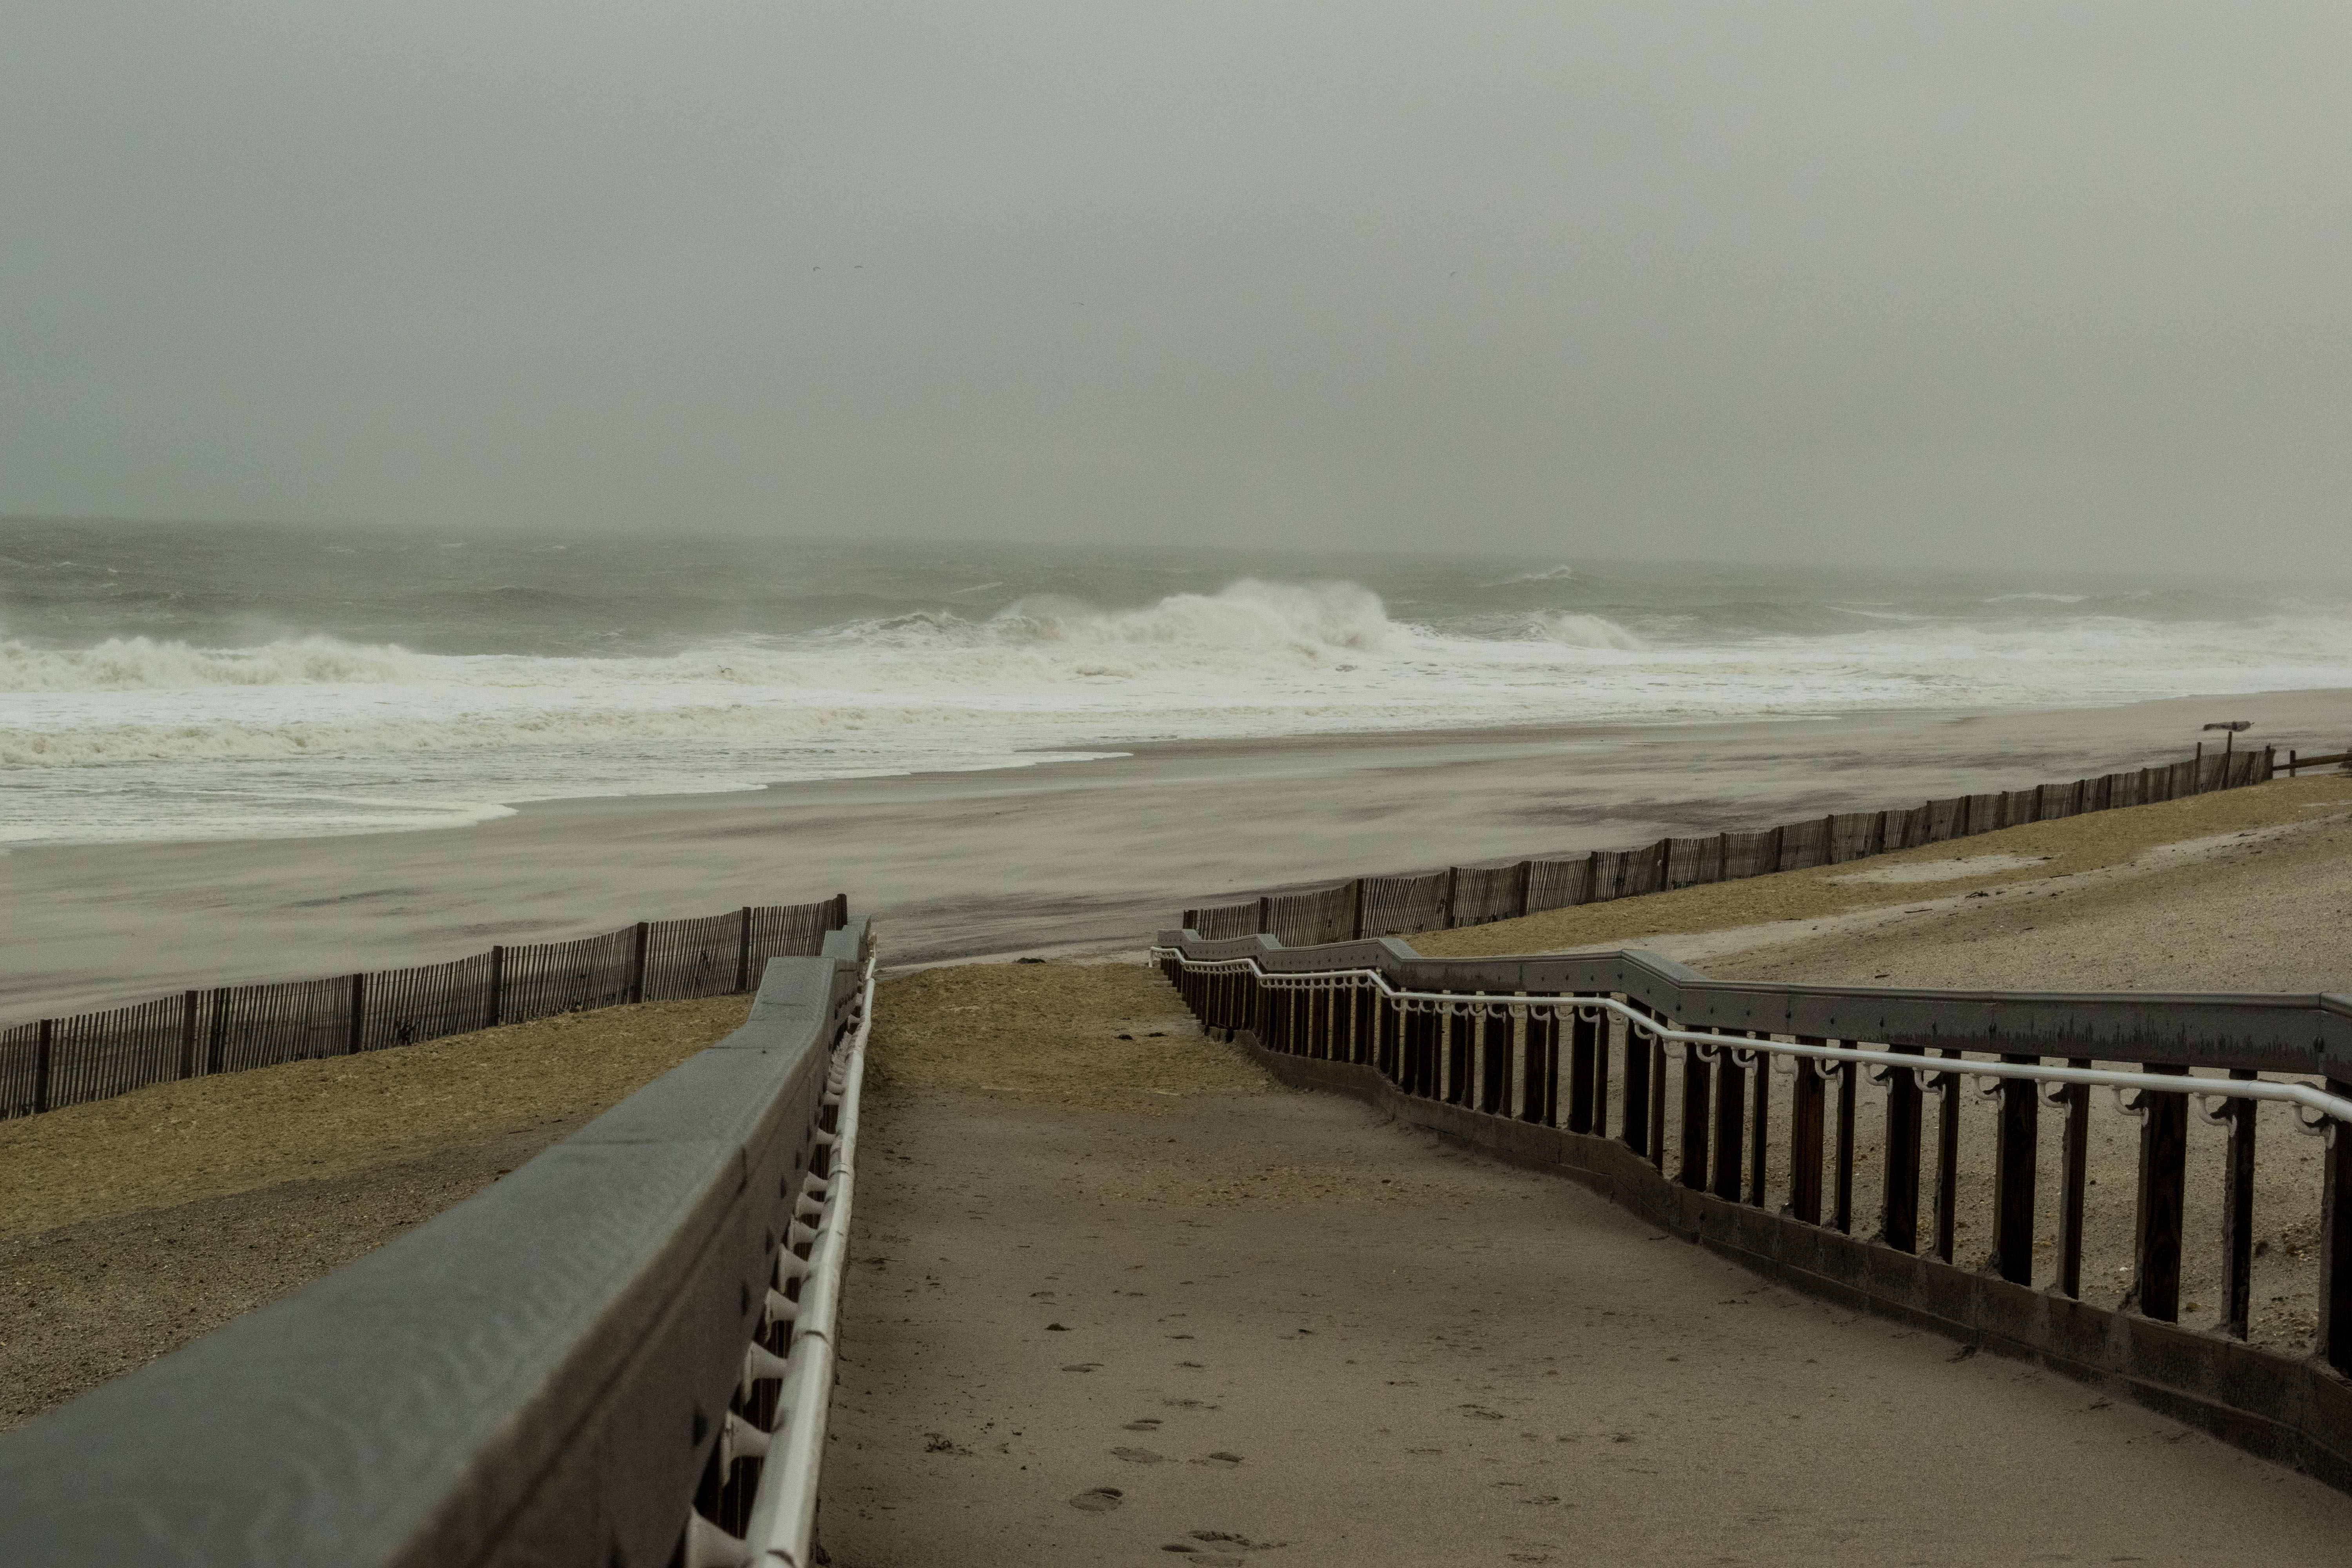 Waves crash at Brick Beach III during the Oct. 27, 2018 nor'easter. (Photo: Daniel Nee)